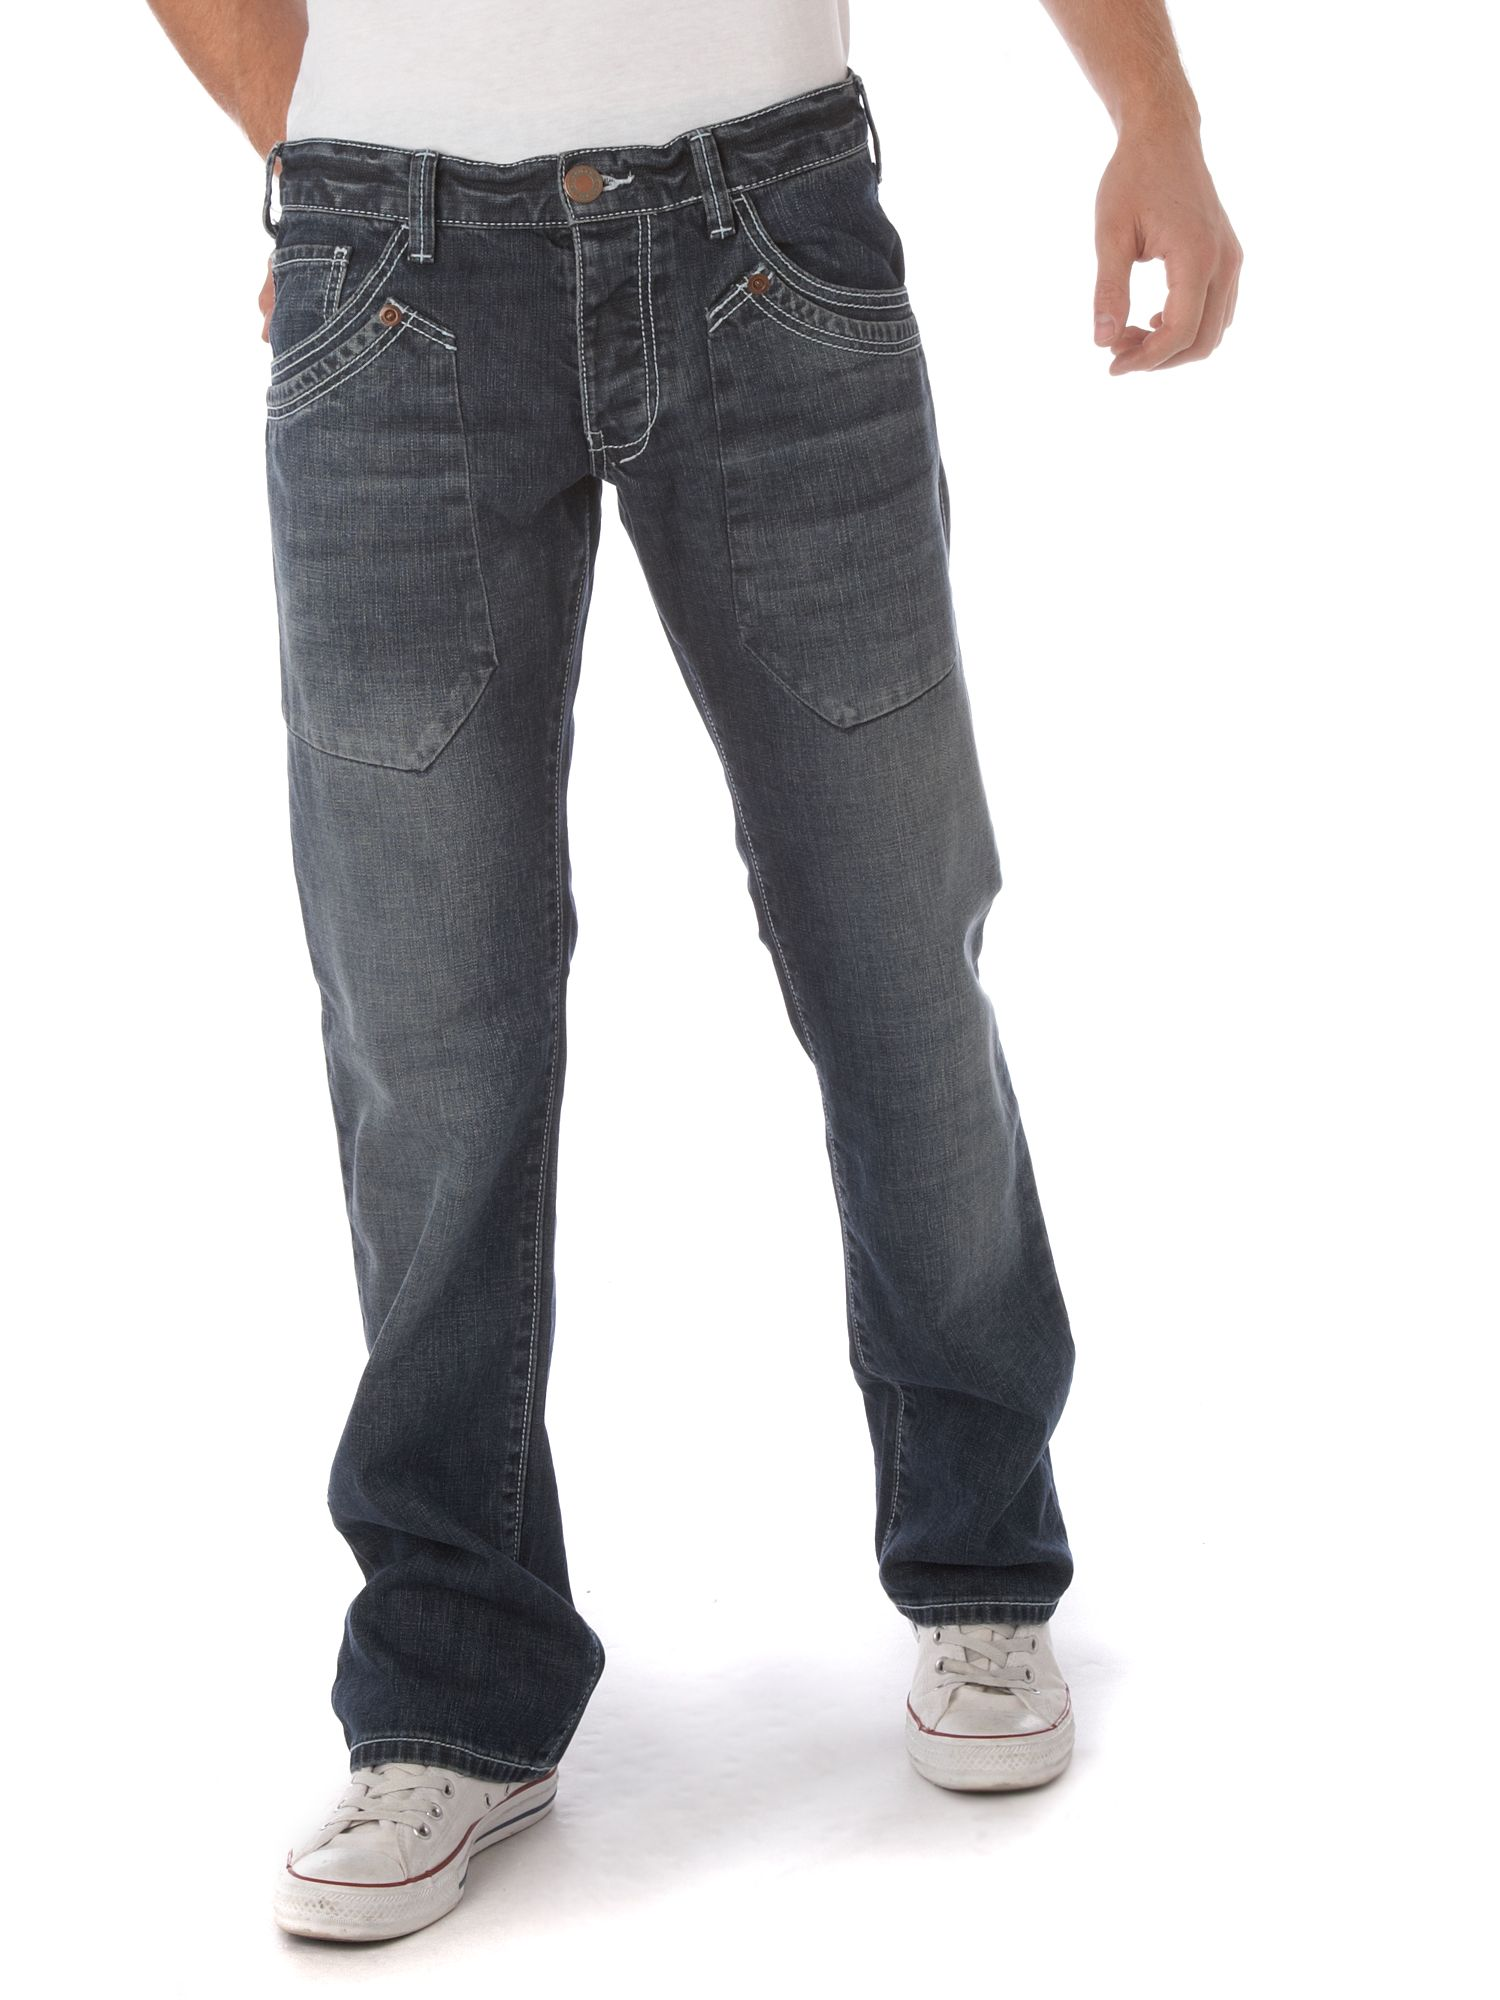 Armani Jeans Faded wash jeans Denim - review compare prices buy online